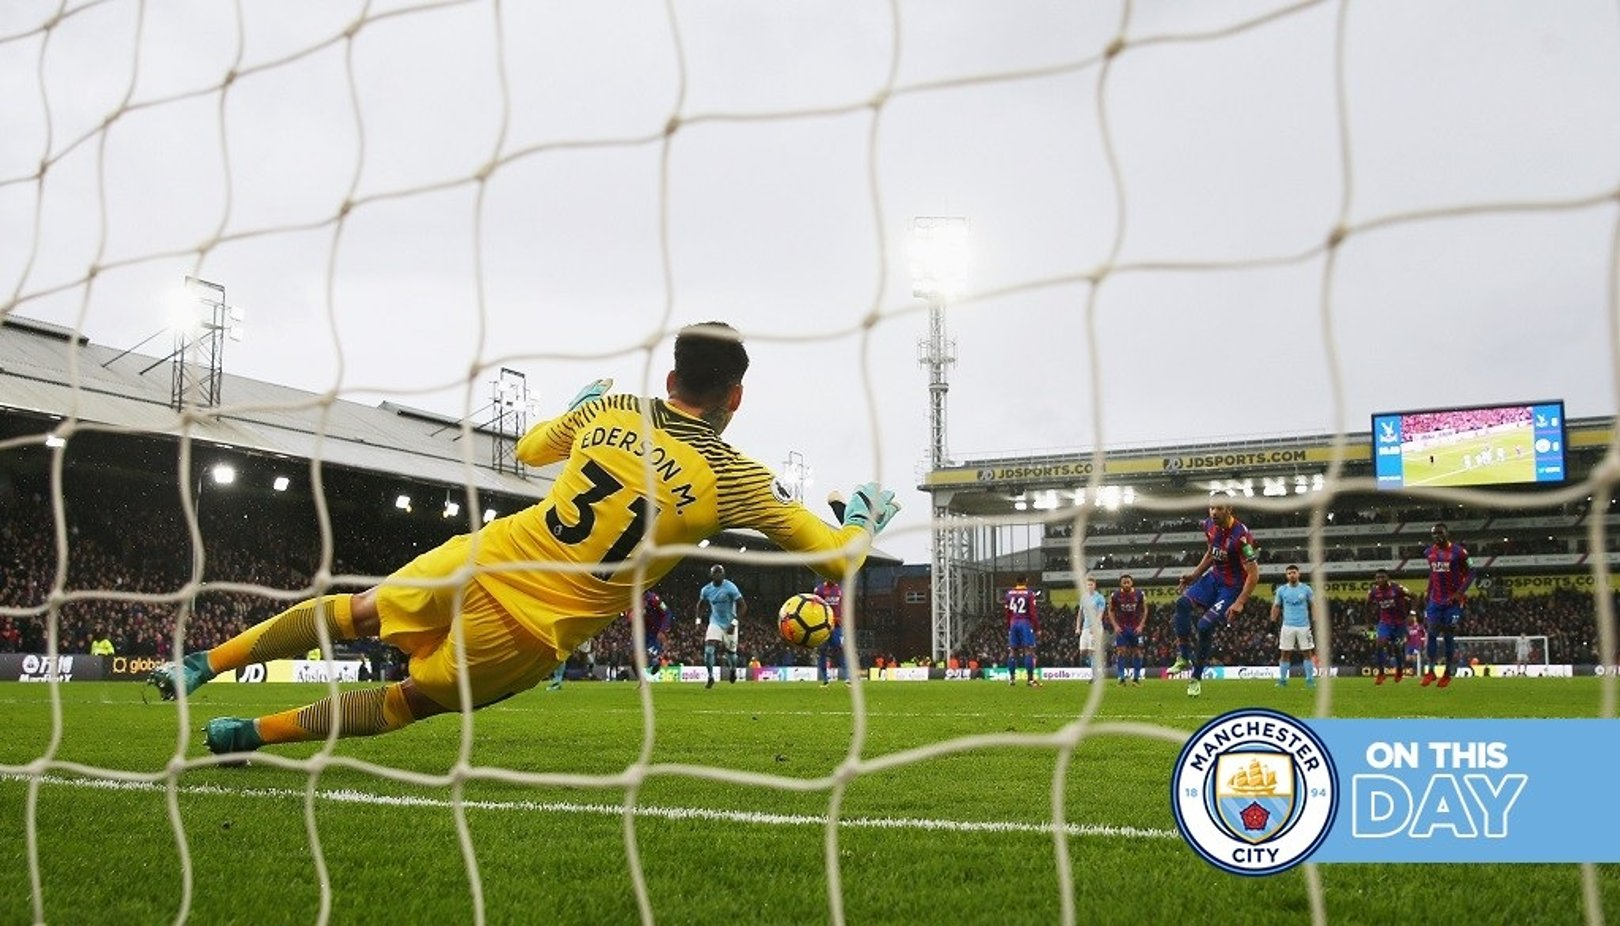 On this day: Ederson penalty save extends magnificent unbeaten run